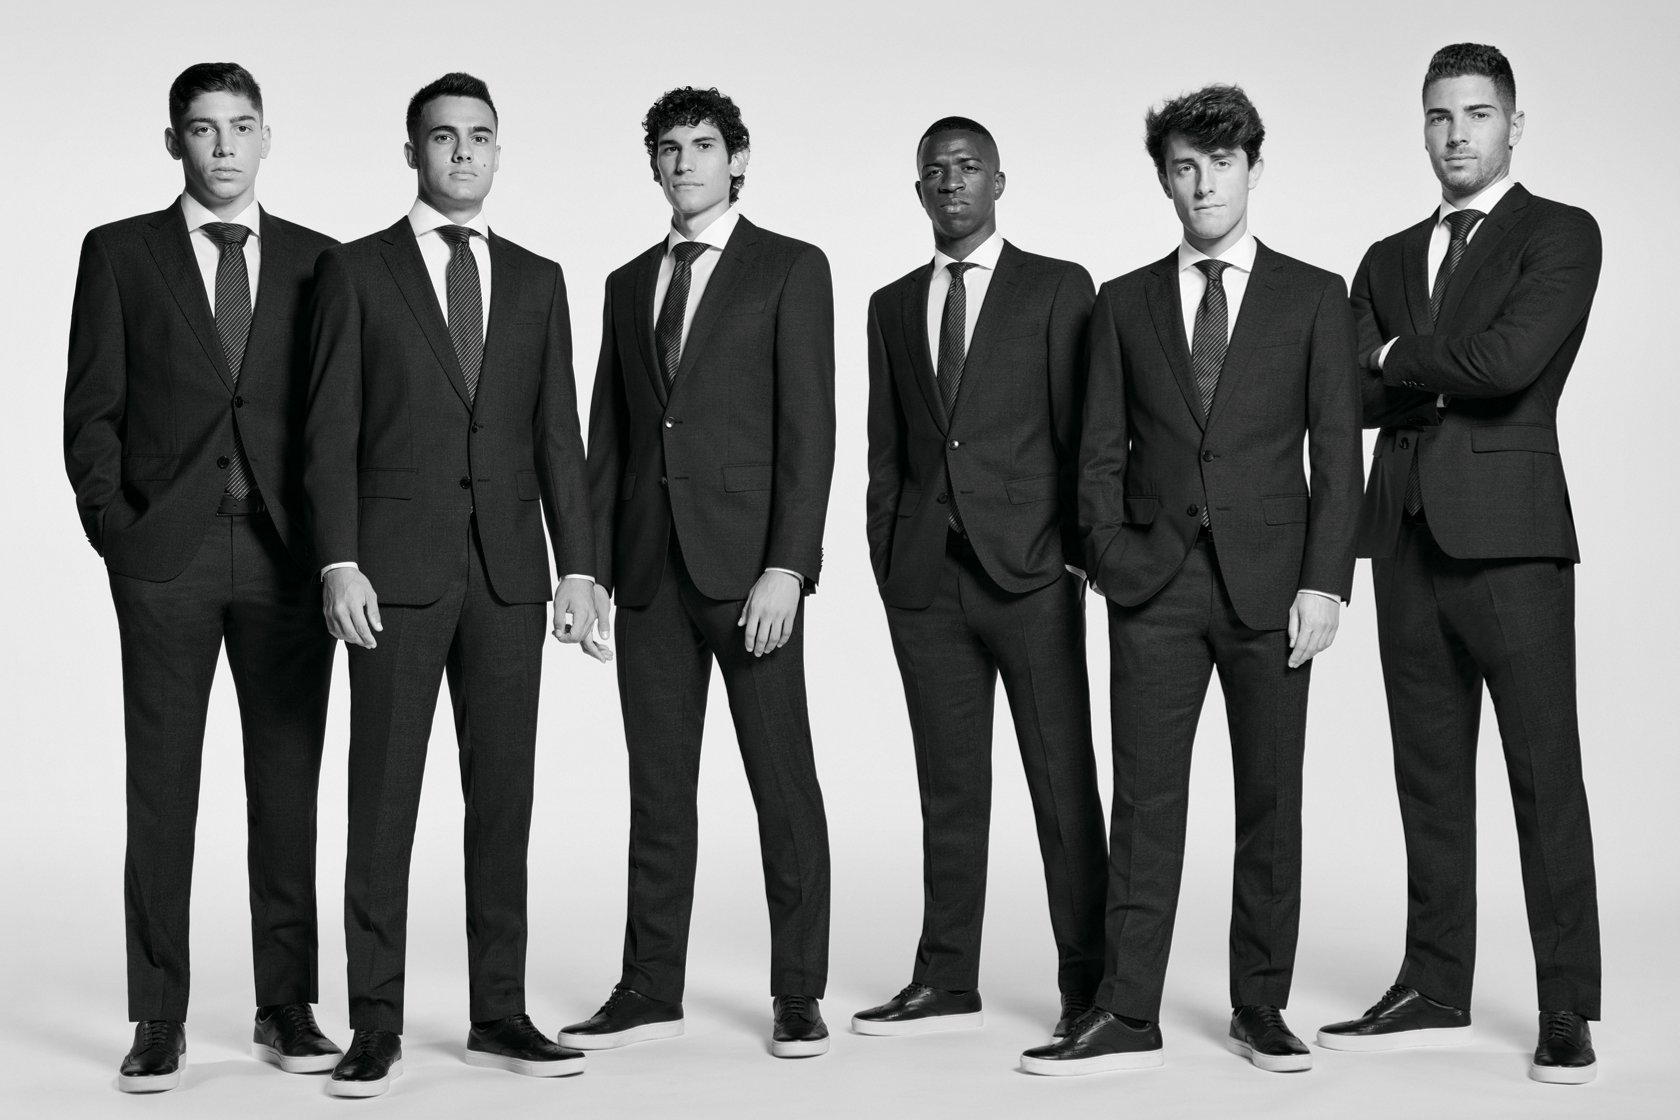 f7352b6a20a4ef Real Madrid C. F. - Players wearing BOSS   Suits & casual looks